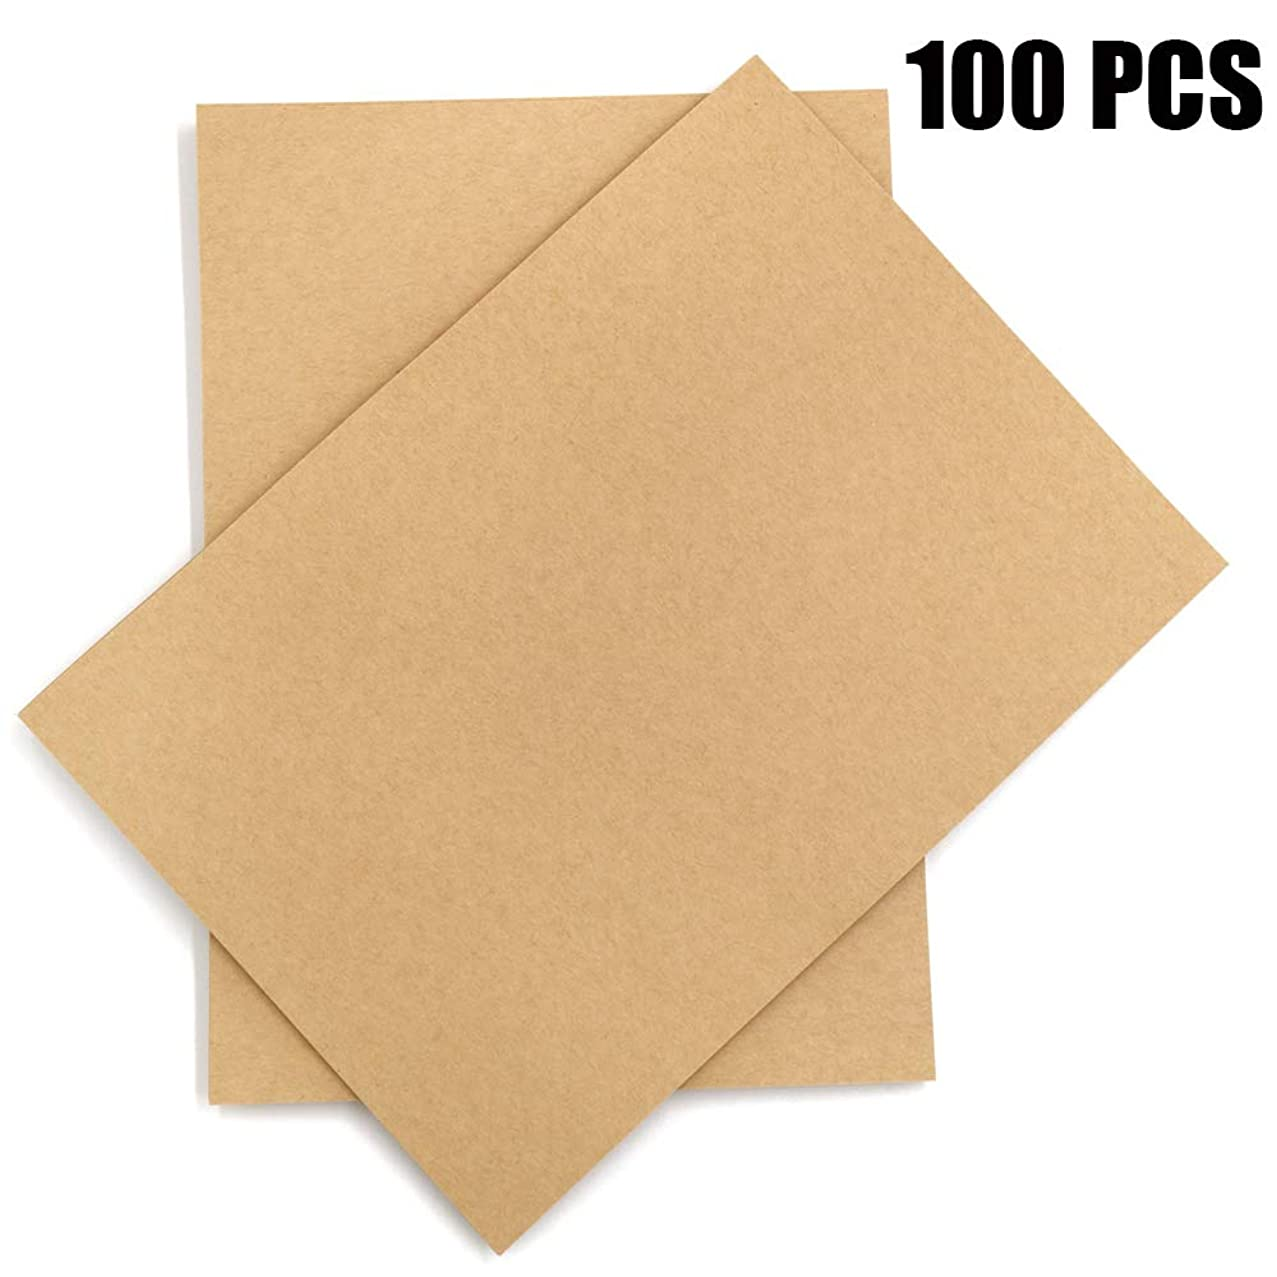 Brown Kraft Paper,100 Sheets A4 Stationery Paper,120GSM Brown Paper Perfect for Arts, Crafts, and Office Use, 8.3